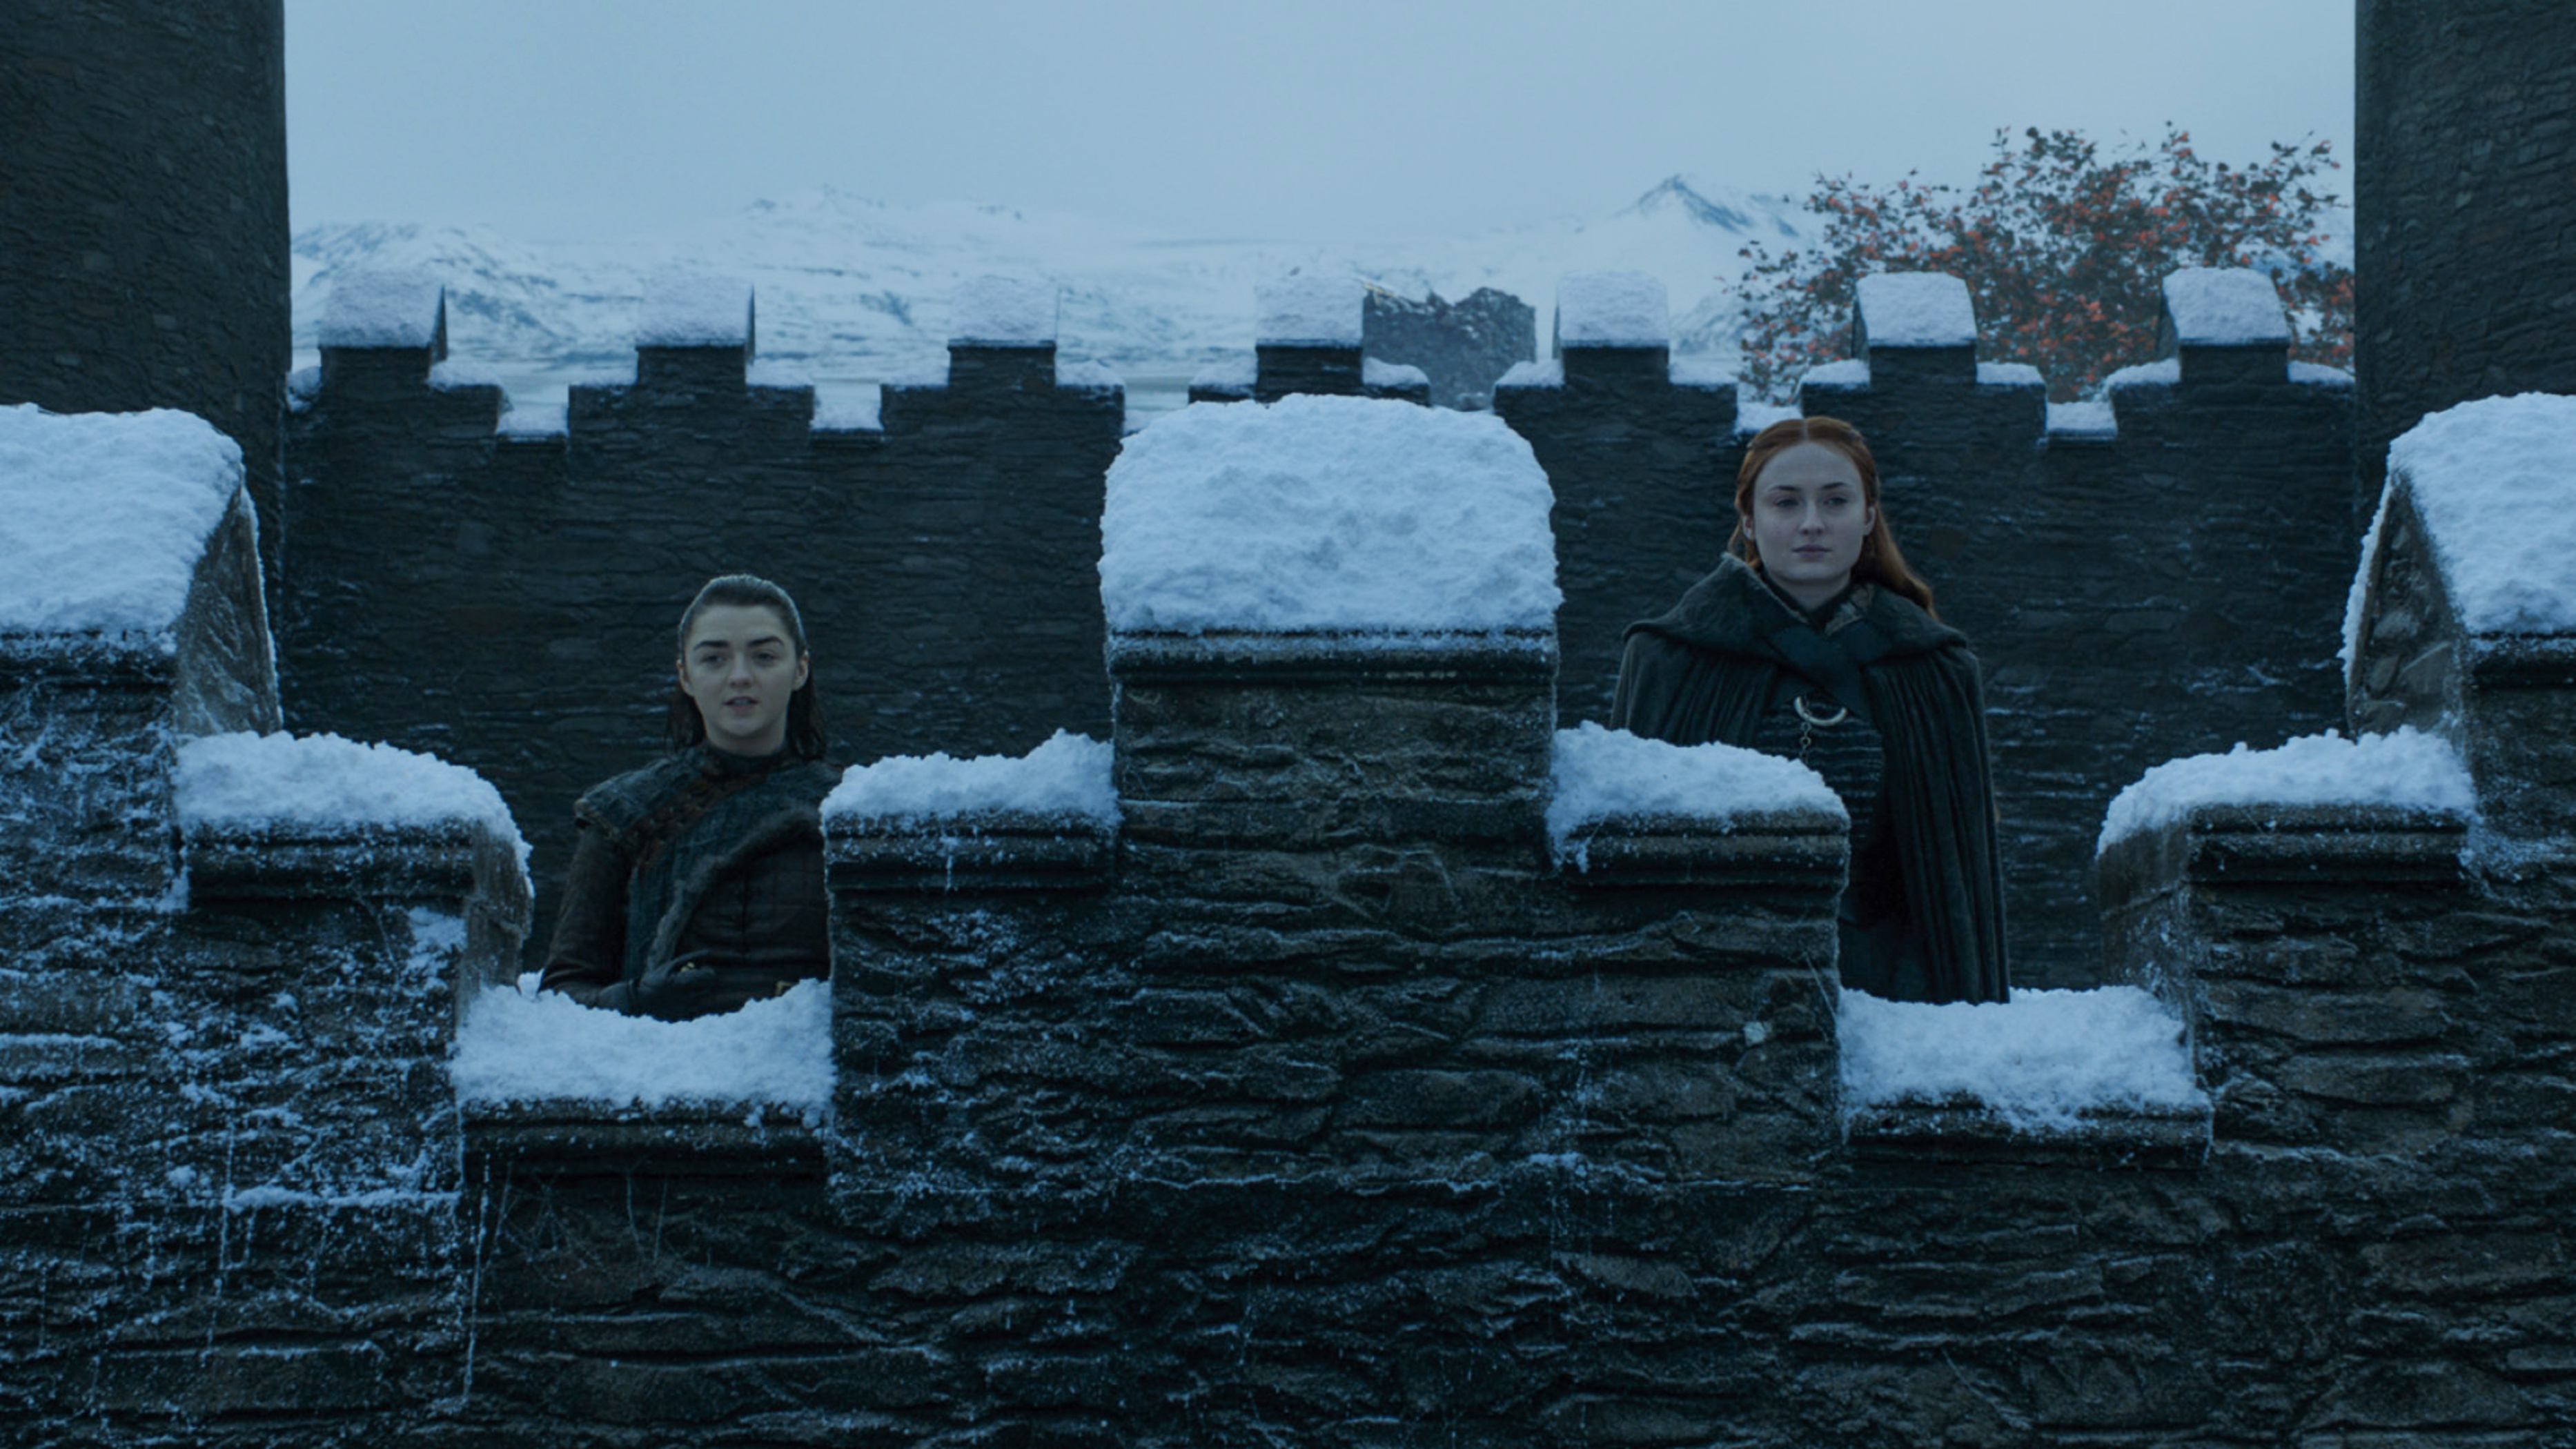 Game of Thrones: Only 1 Out of 19 Directors Have Been Women | IndieWire